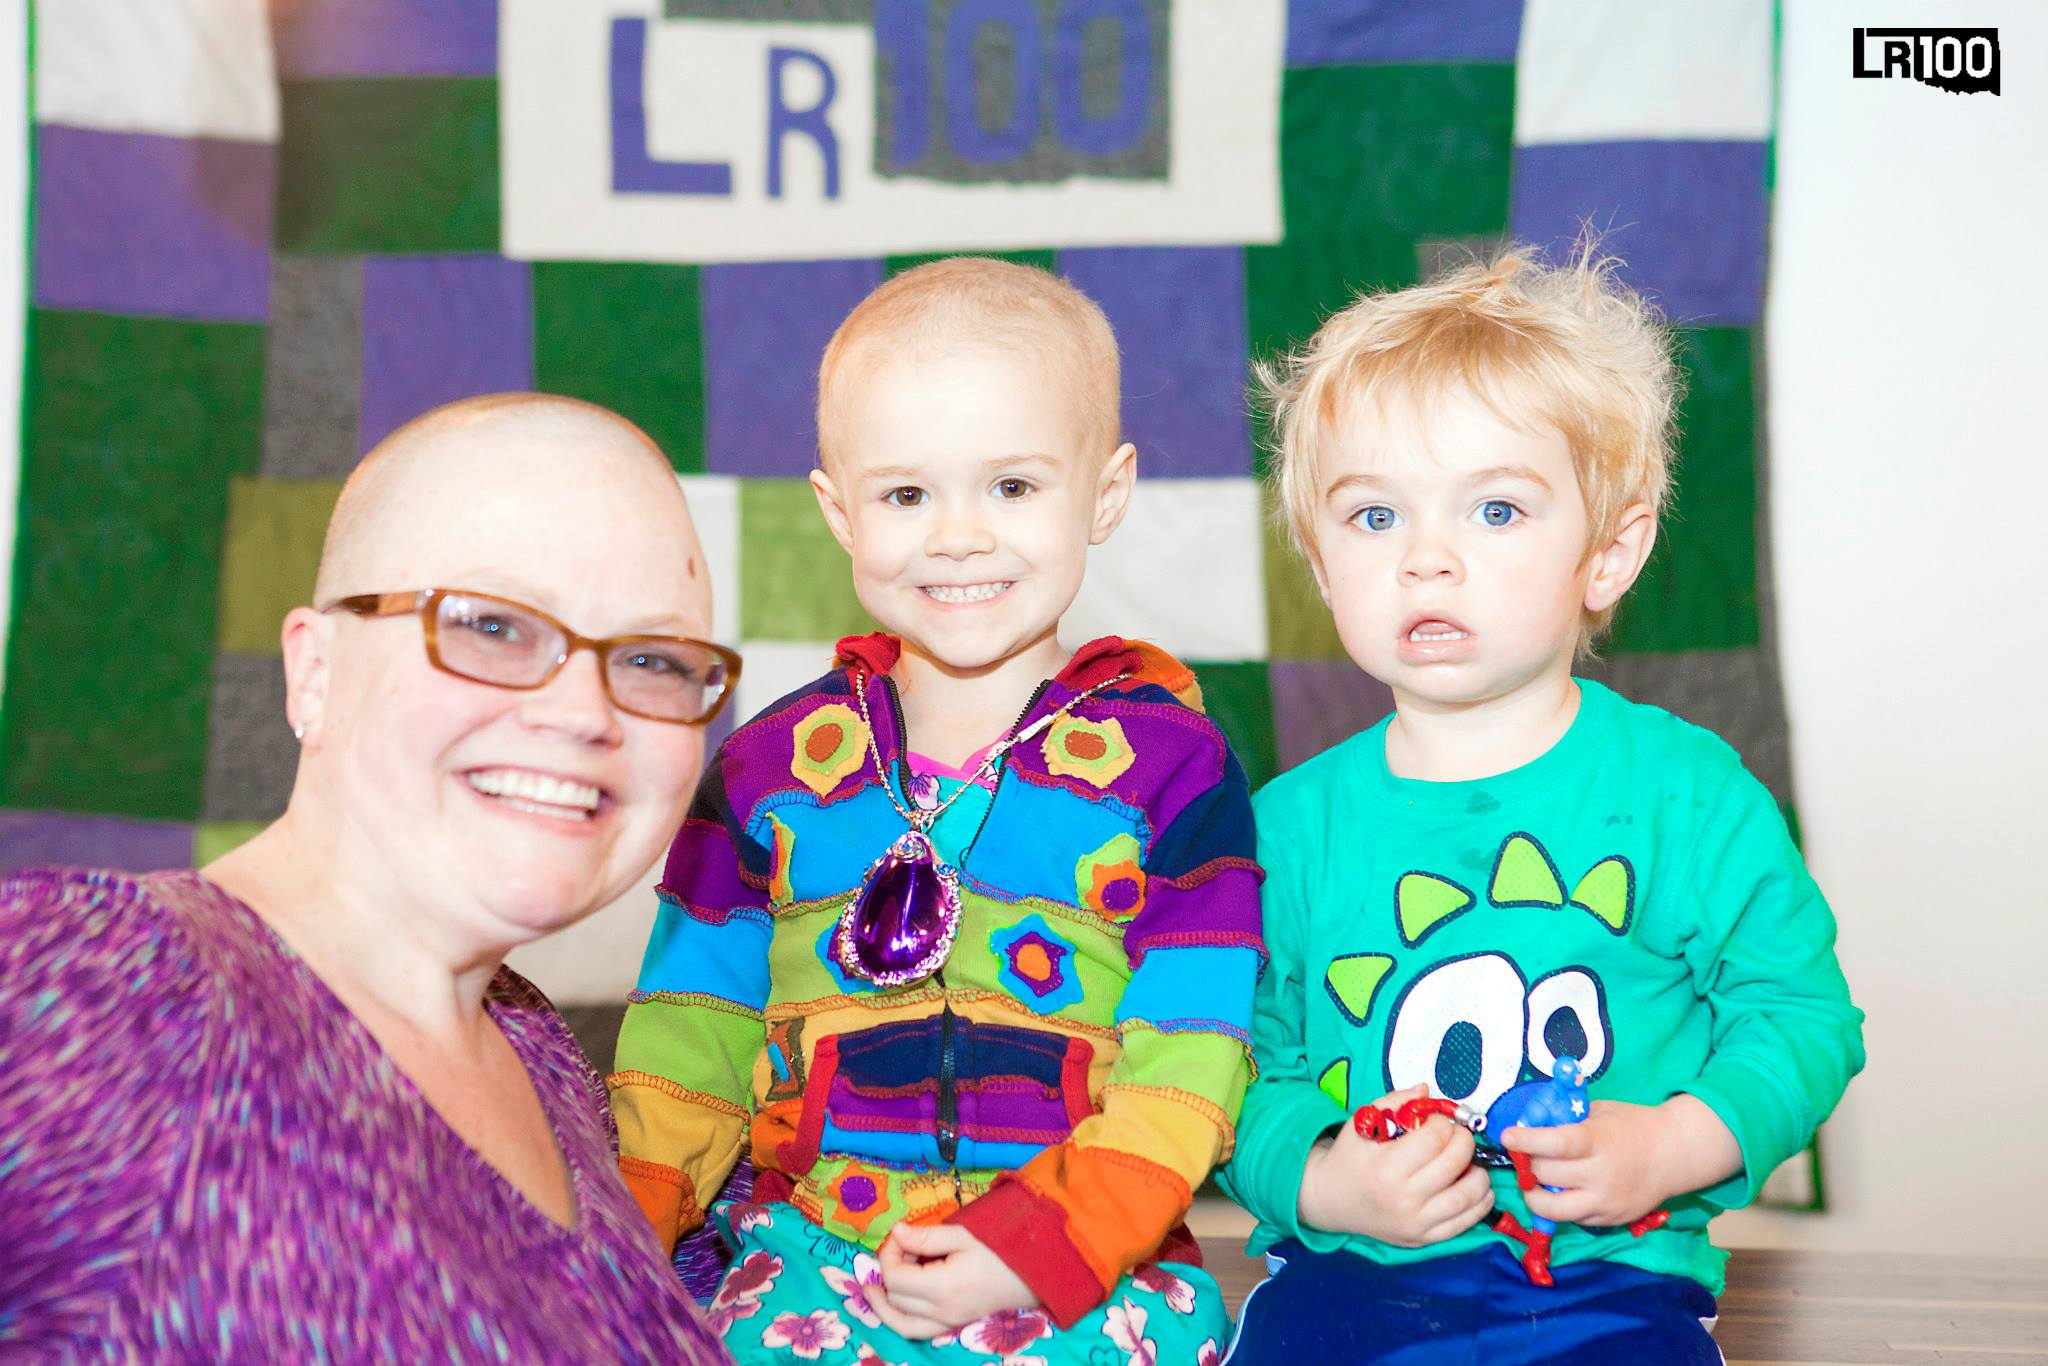 Andrea, Ainsley, and George with Andrea's LR100 quilt. Photo credit  241photography.com